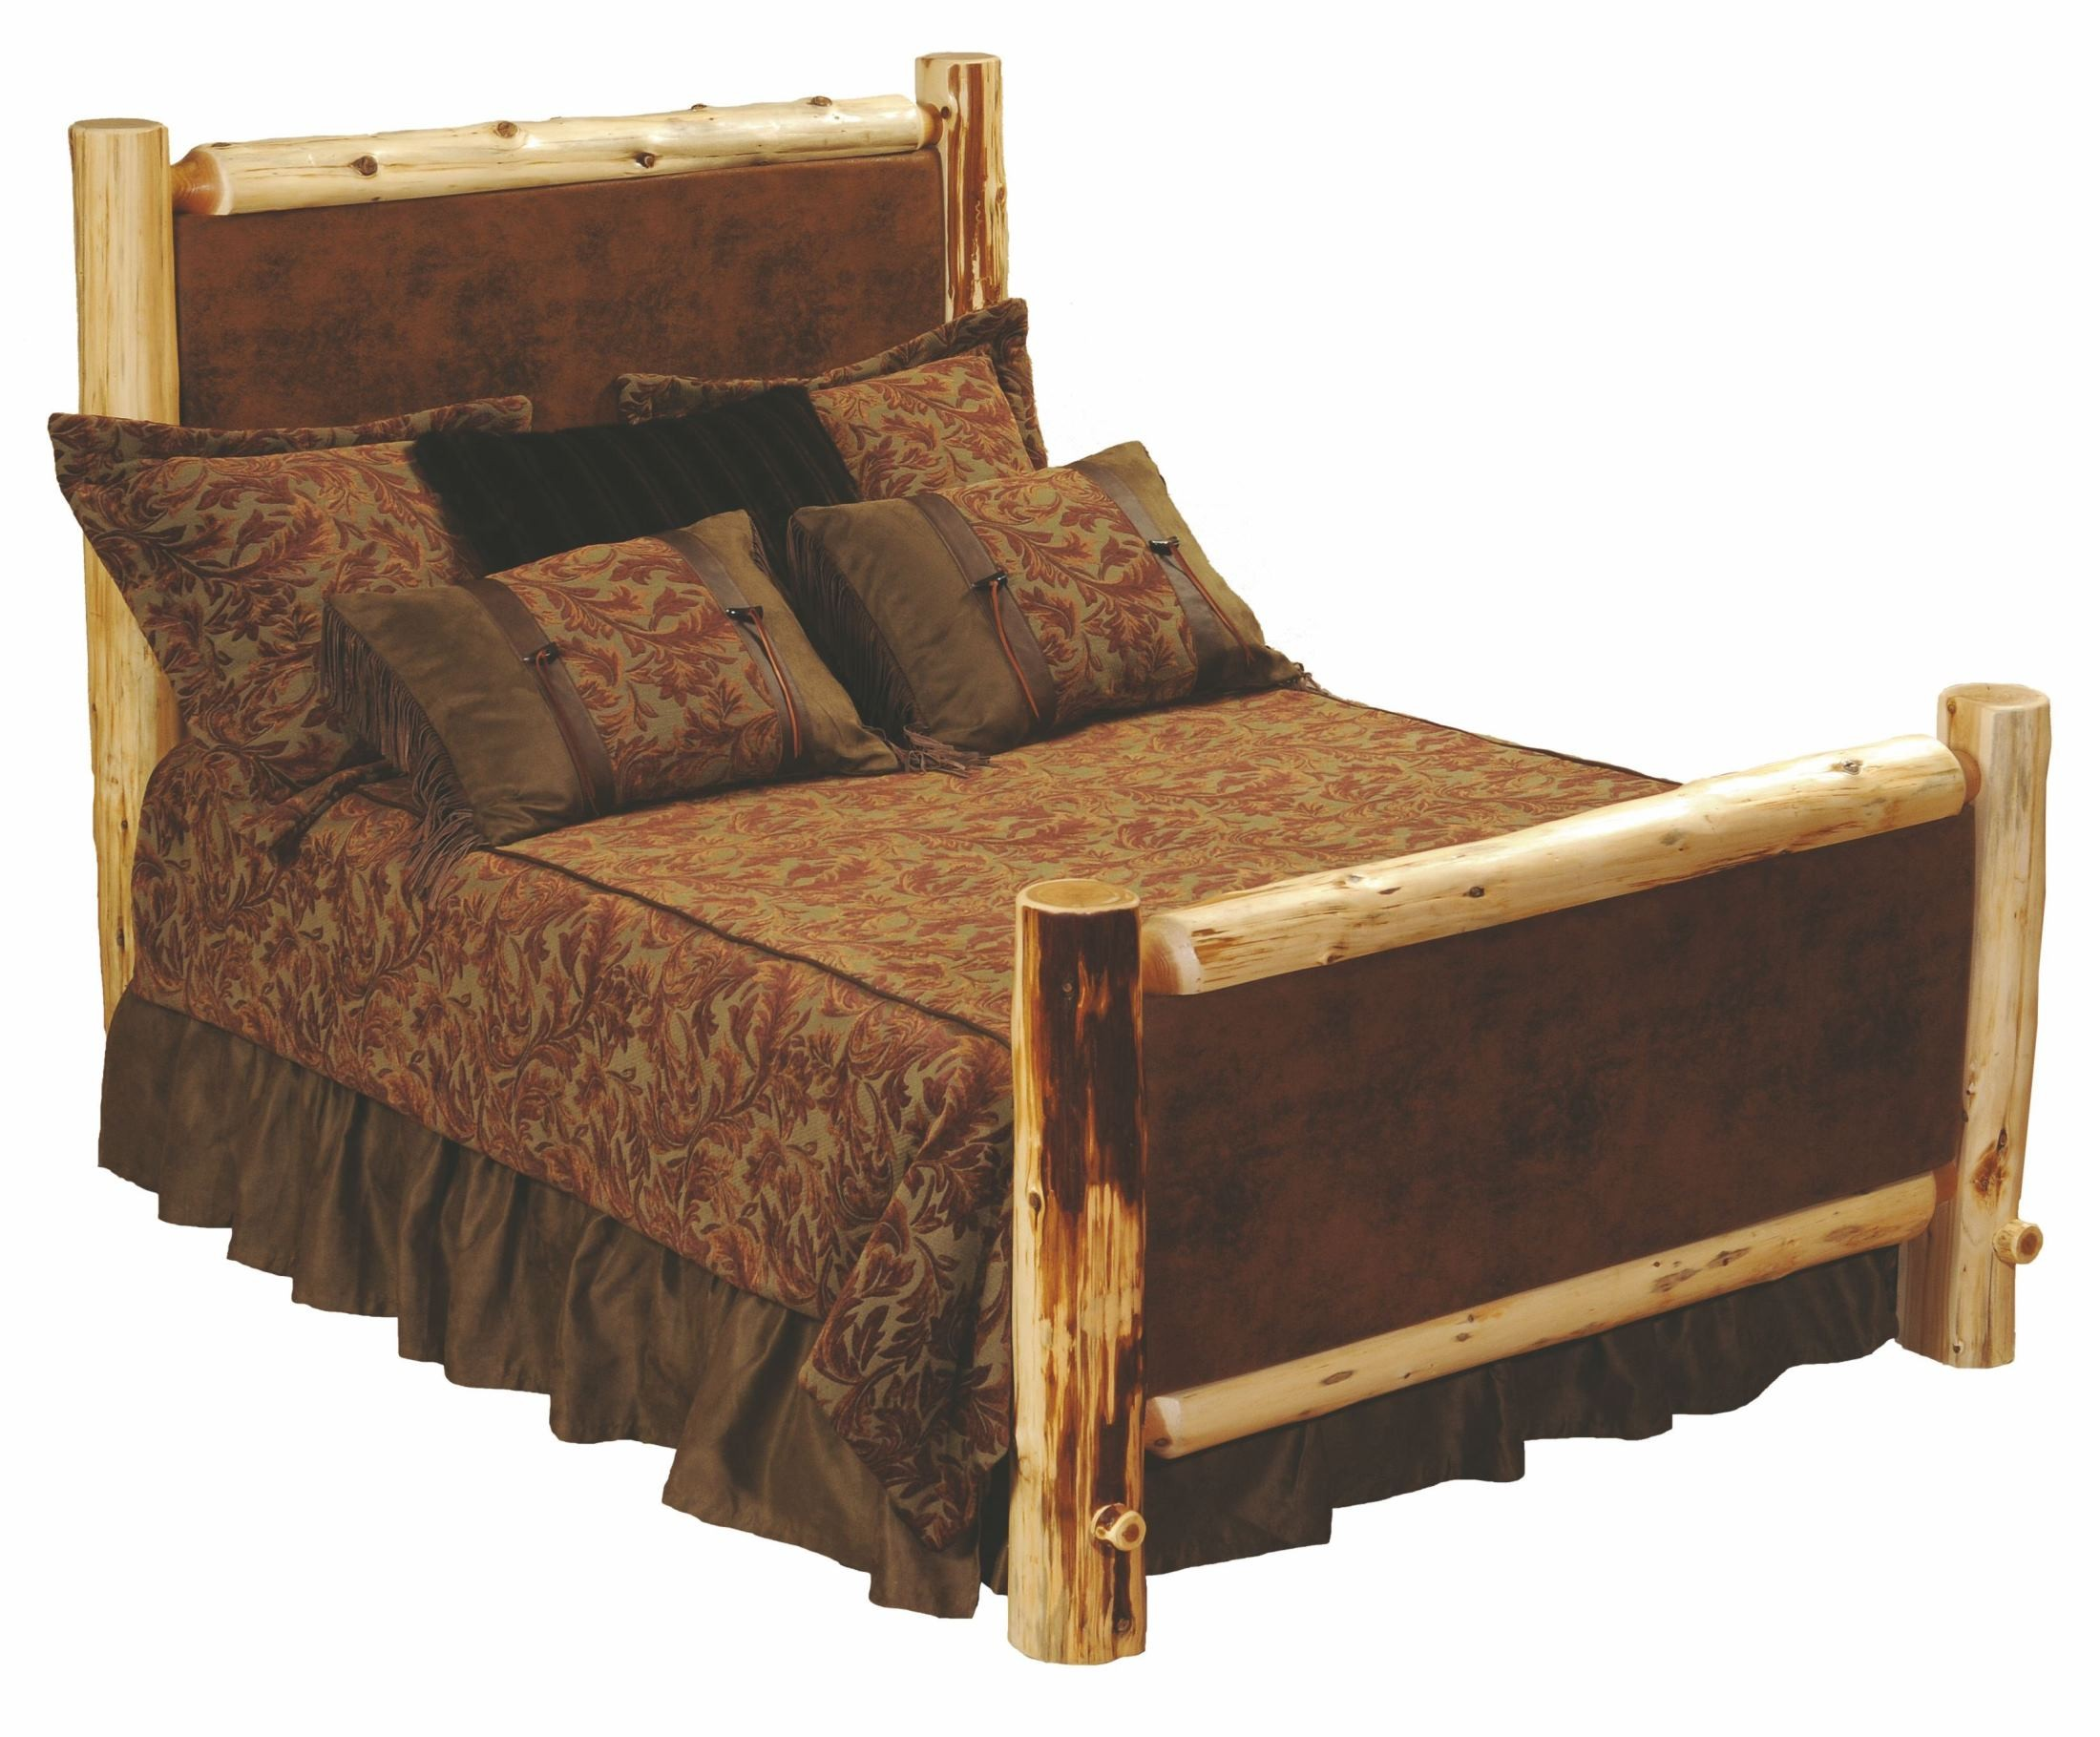 Traditional Cedar Leather Upholstered Bedroom Set from